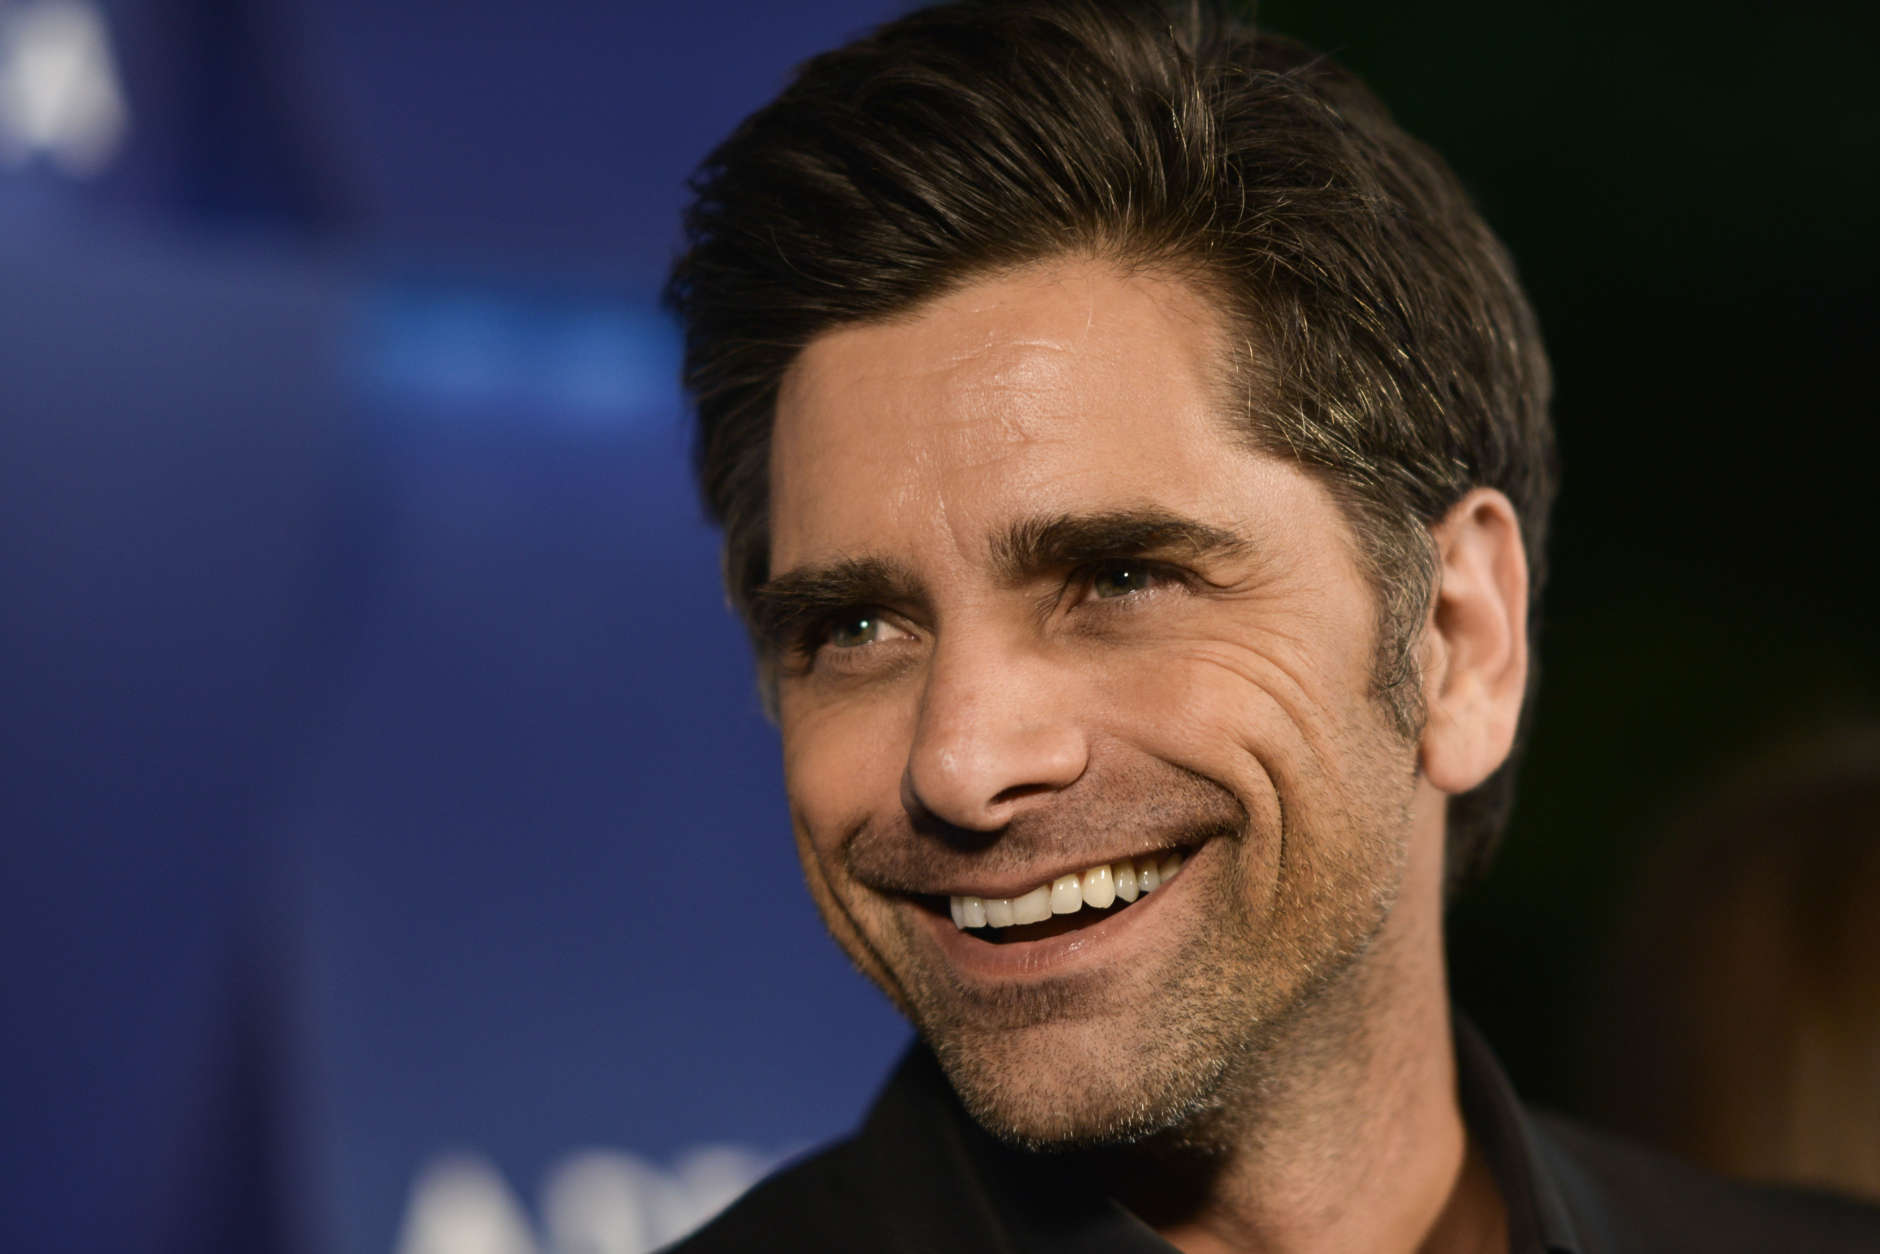 John Stamos arrives at the Delta Airlines' star-studded summer celebration on Thursday, Aug. 15, 2013 in Beverly Hills, Calif. (Photo by Richard Shotwell/Invision/AP)